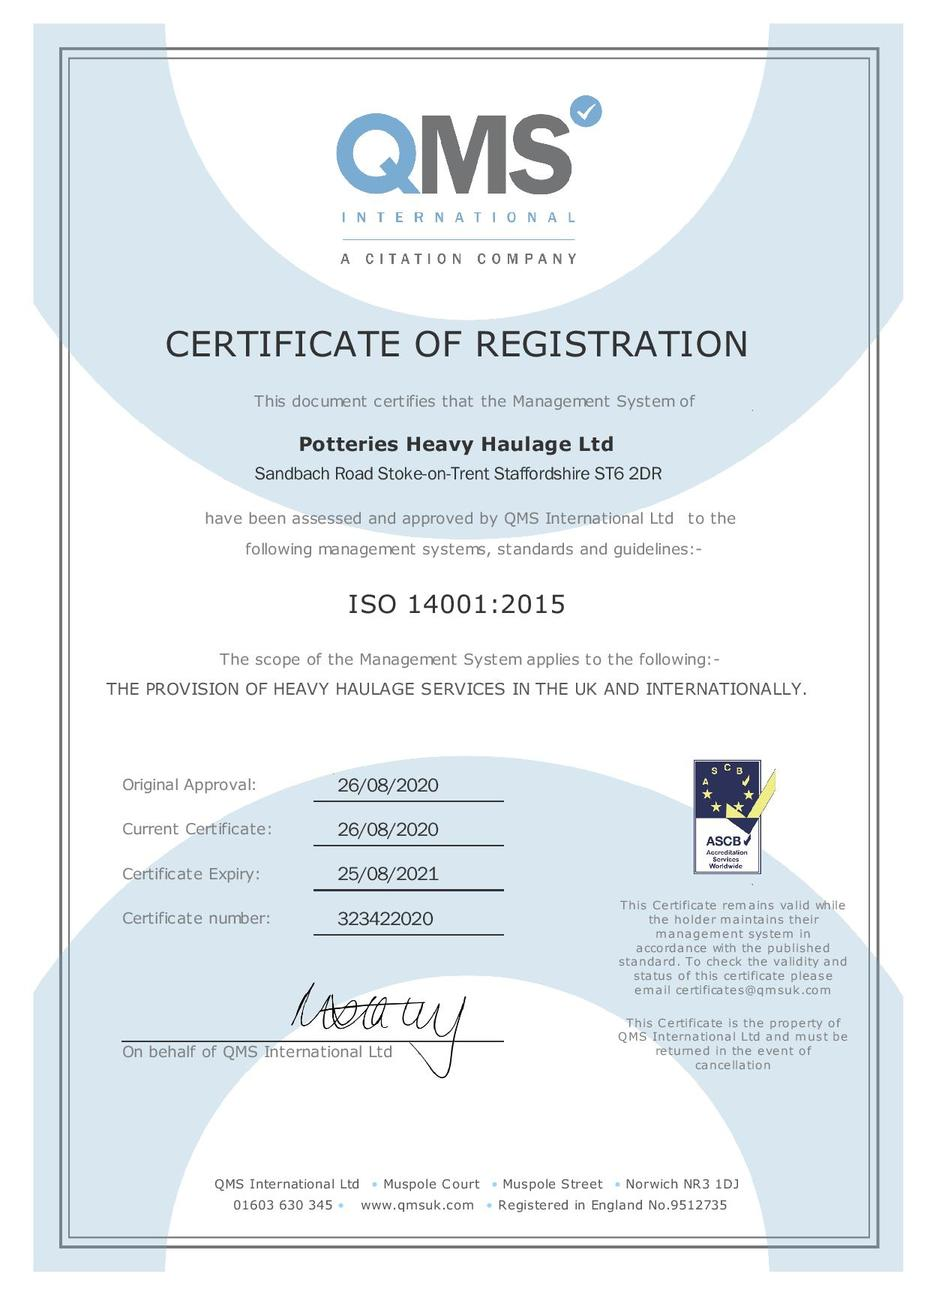 ISO 14001 Certificate for Heavy Haulage Services